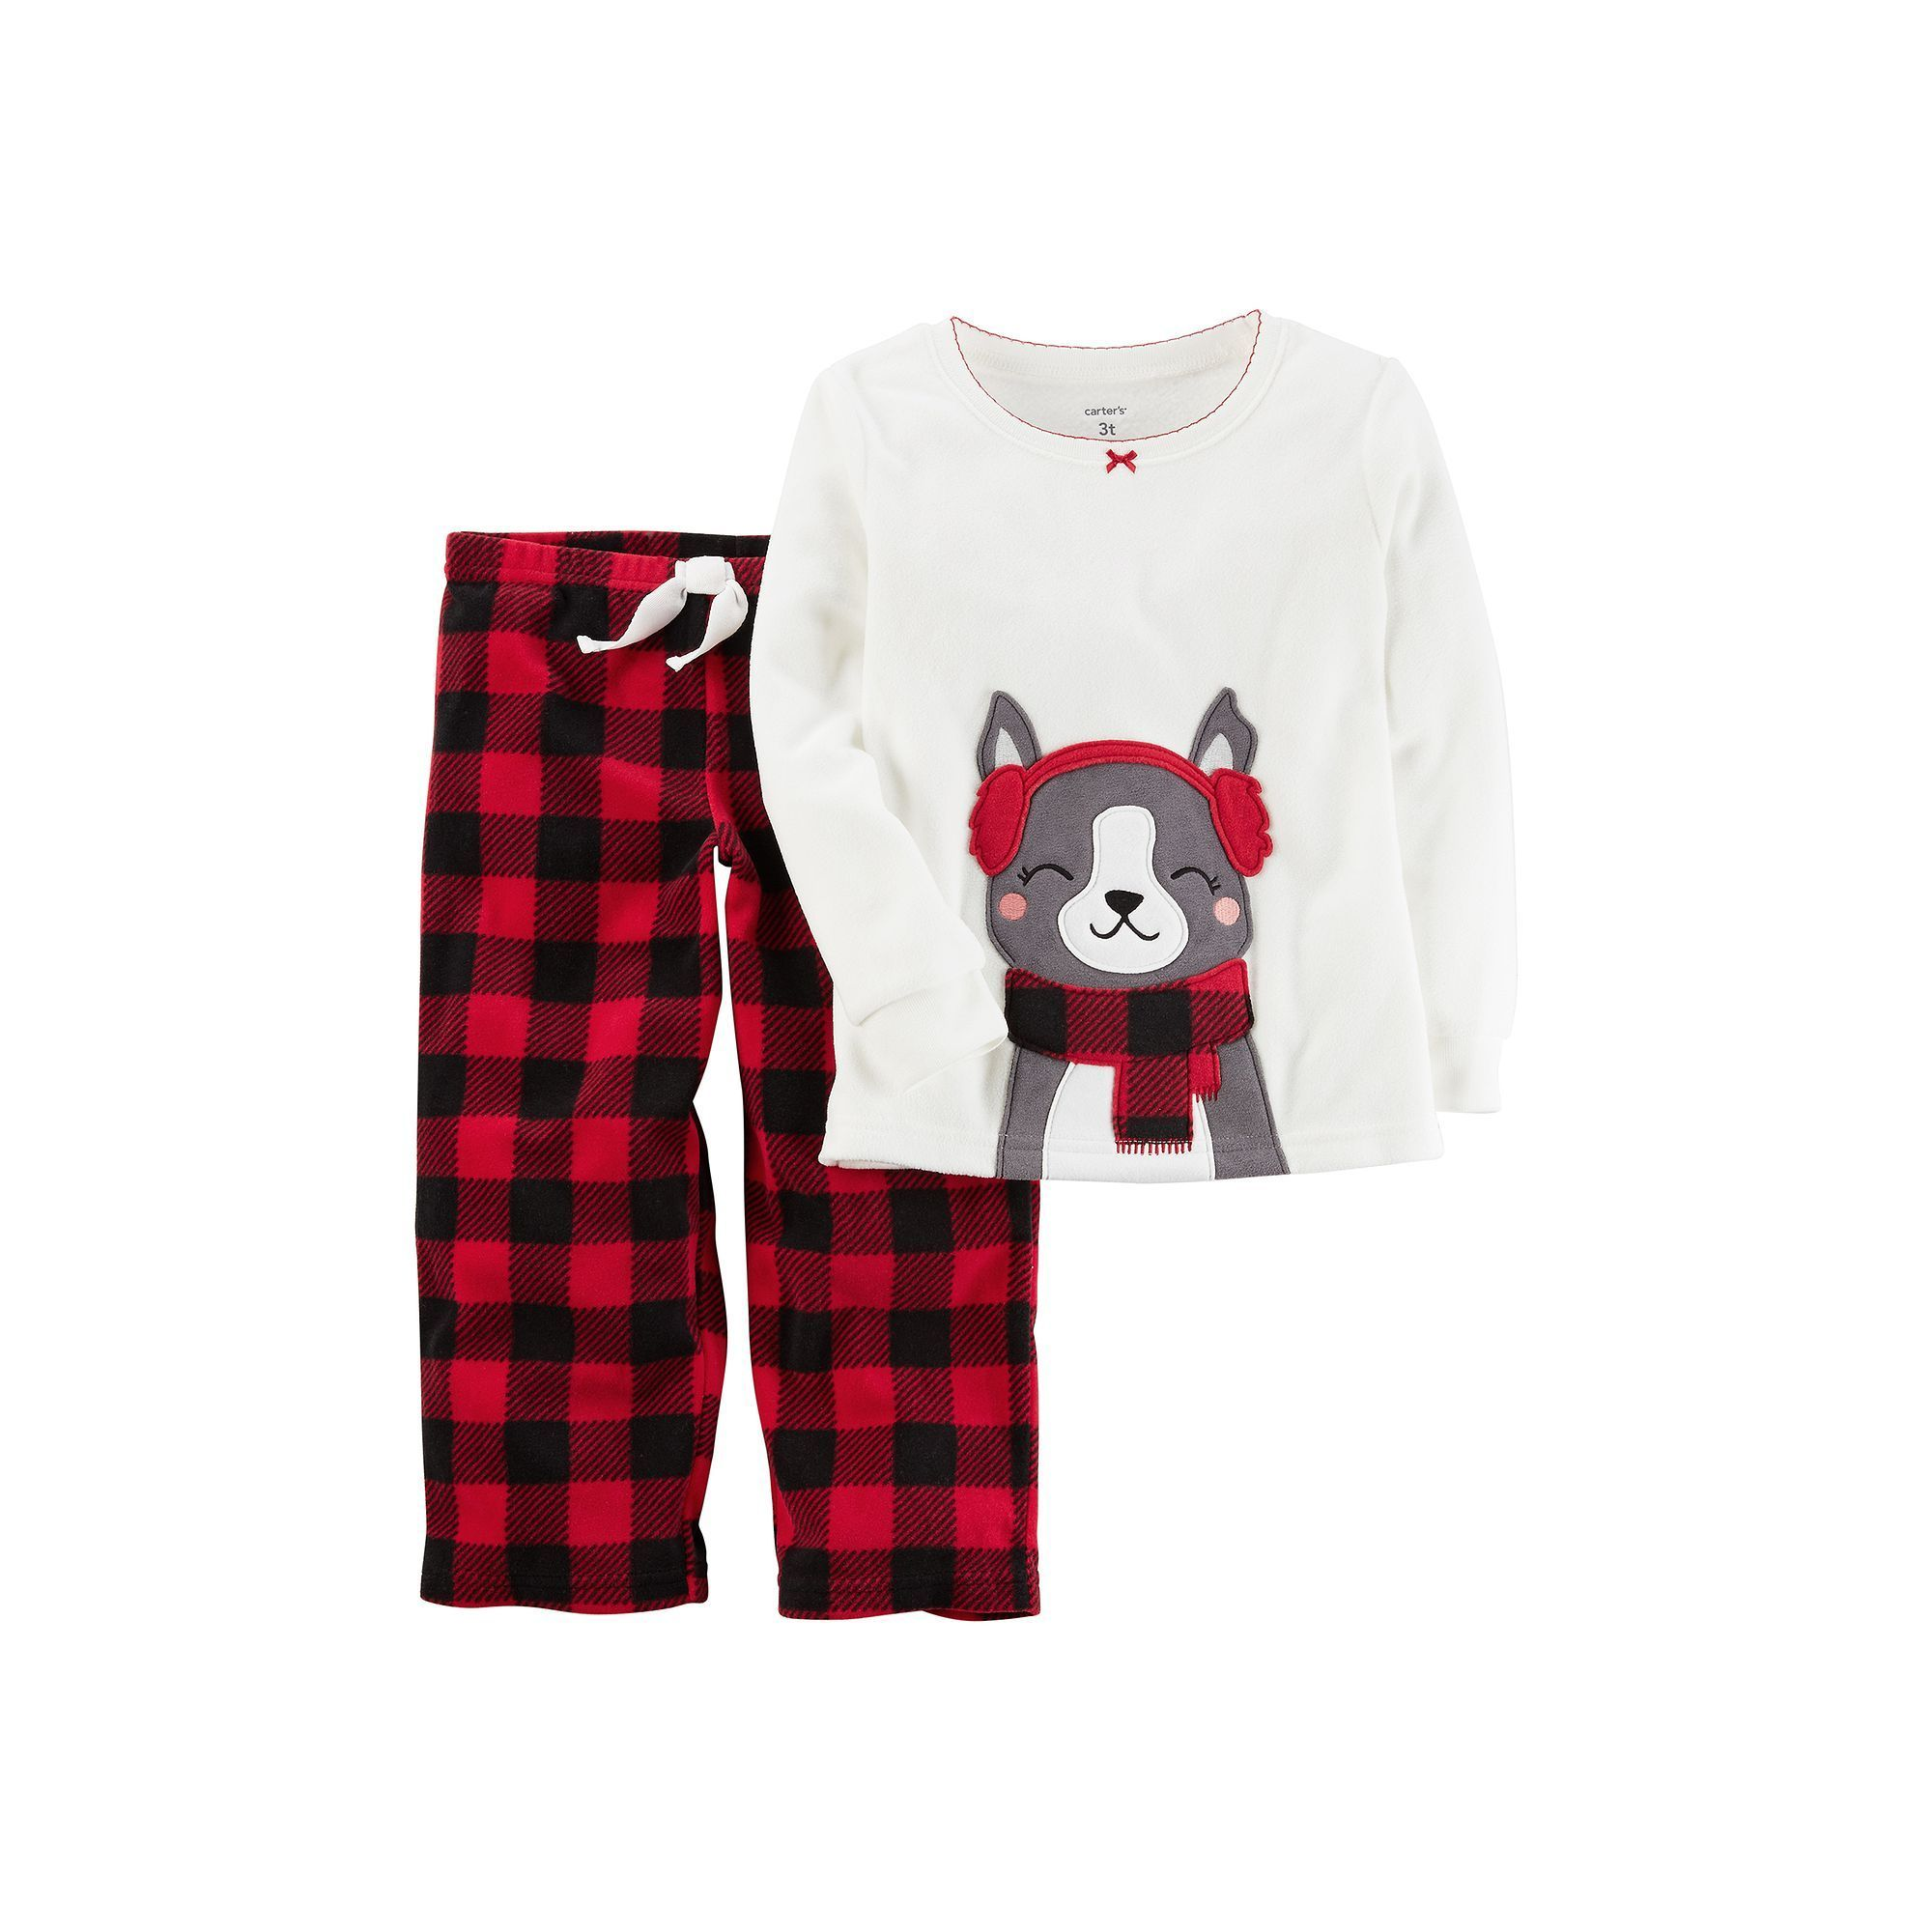 d91854da7 Toddler Girl Carter s Applique Top   Microfleece Buffalo Check ...